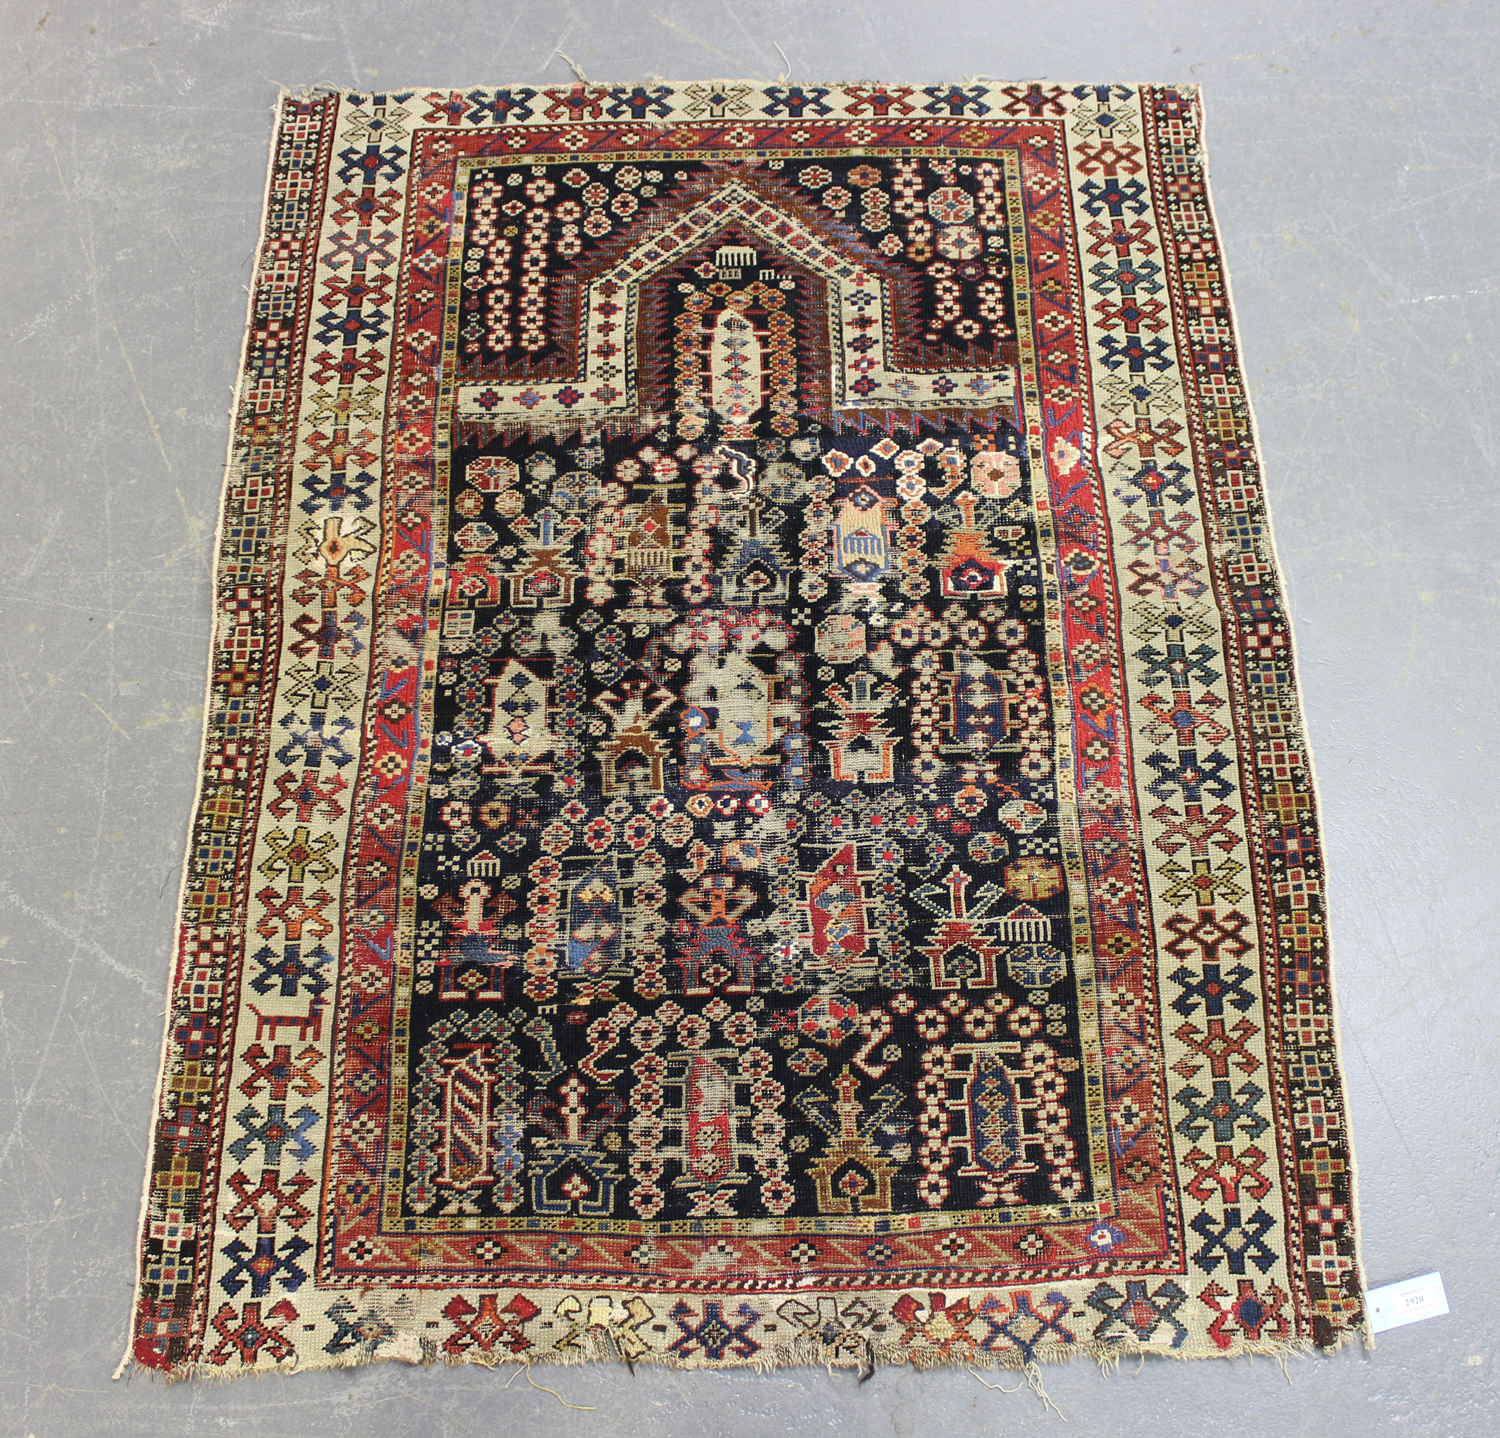 A Caucasian prayer rug, late 19th/early 20th century, the charcoal mihrab filled with boteh and